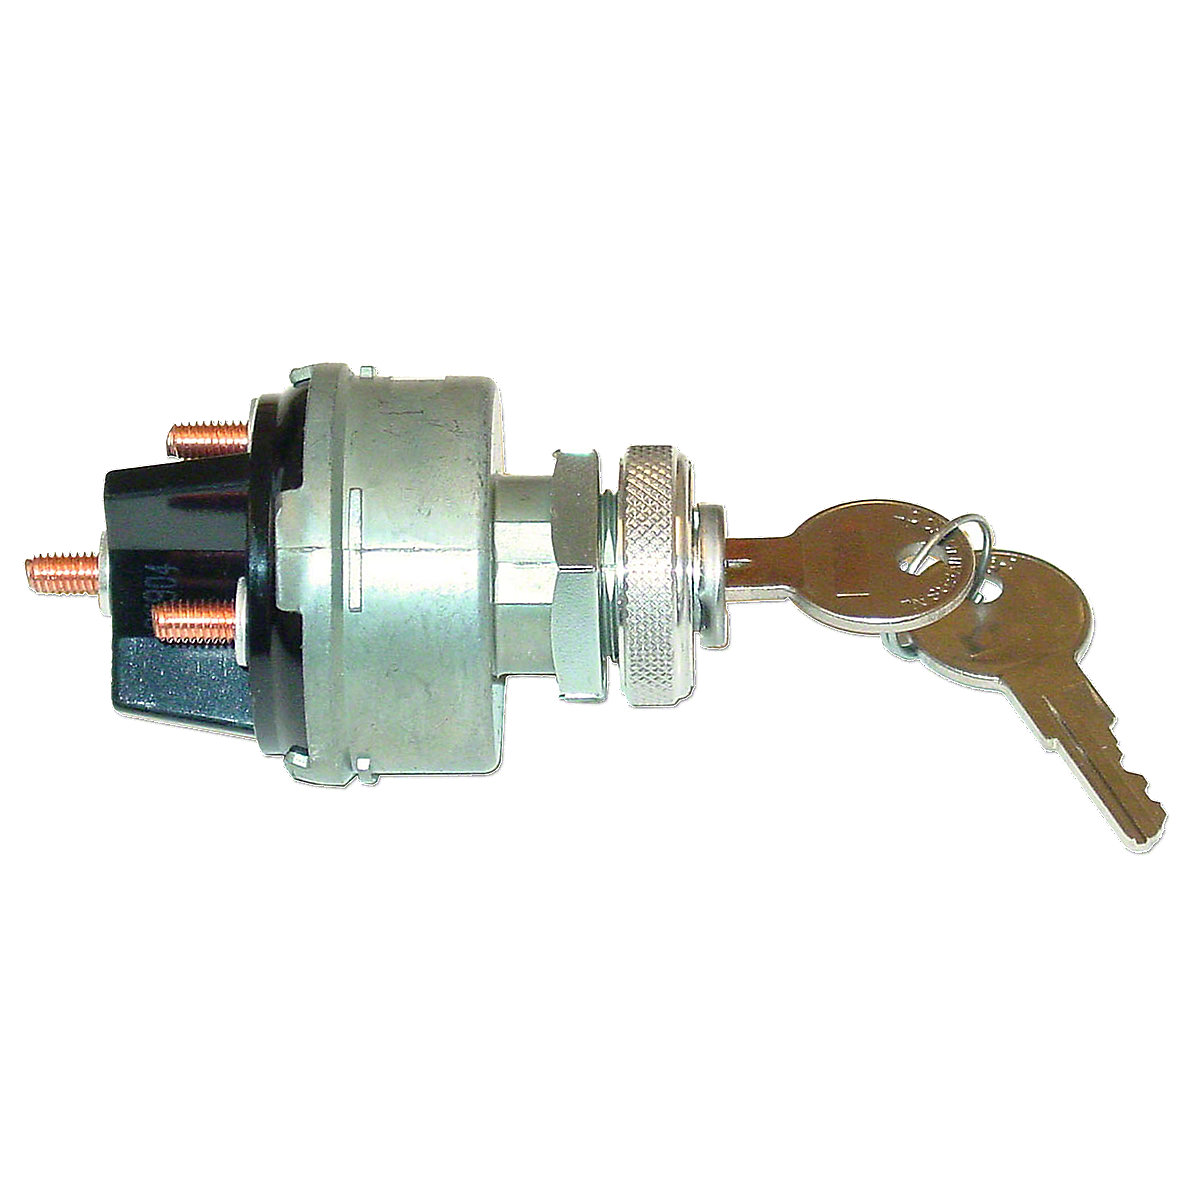 Ignition Switch With Key For Allis Chalmers Tractors.